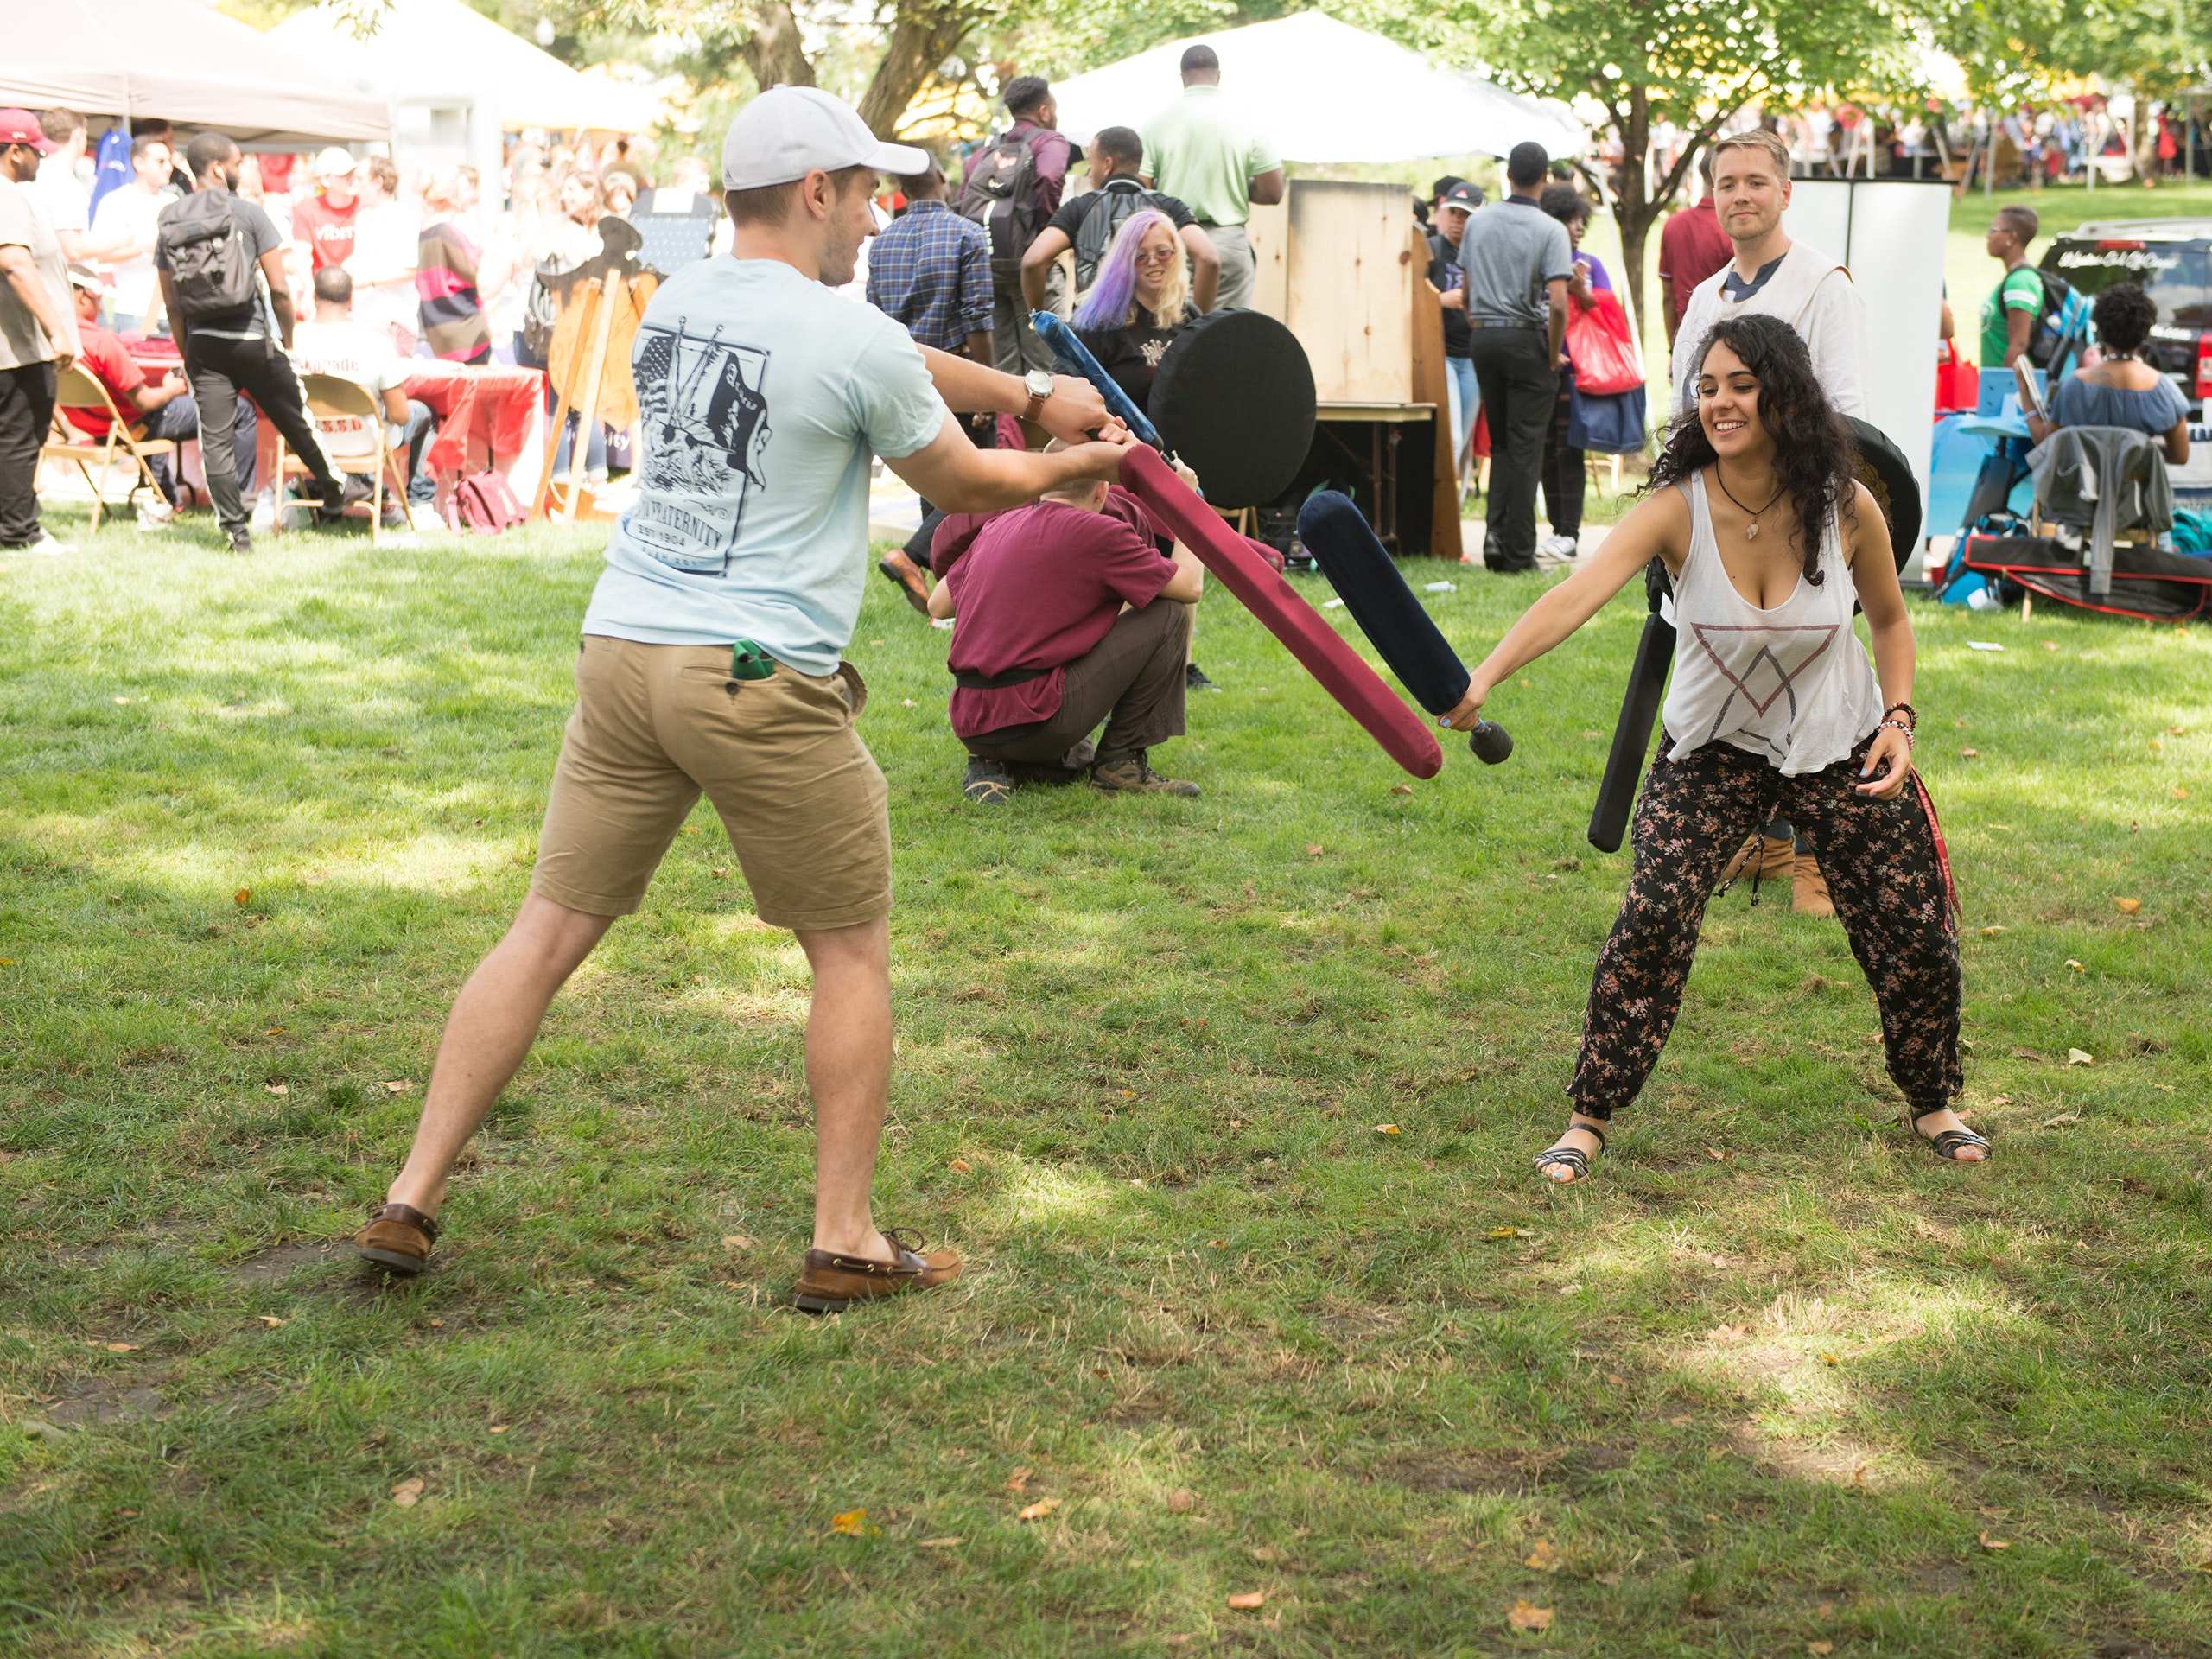 Male and female student fighting with foam swords on the quad during Festival ISU.